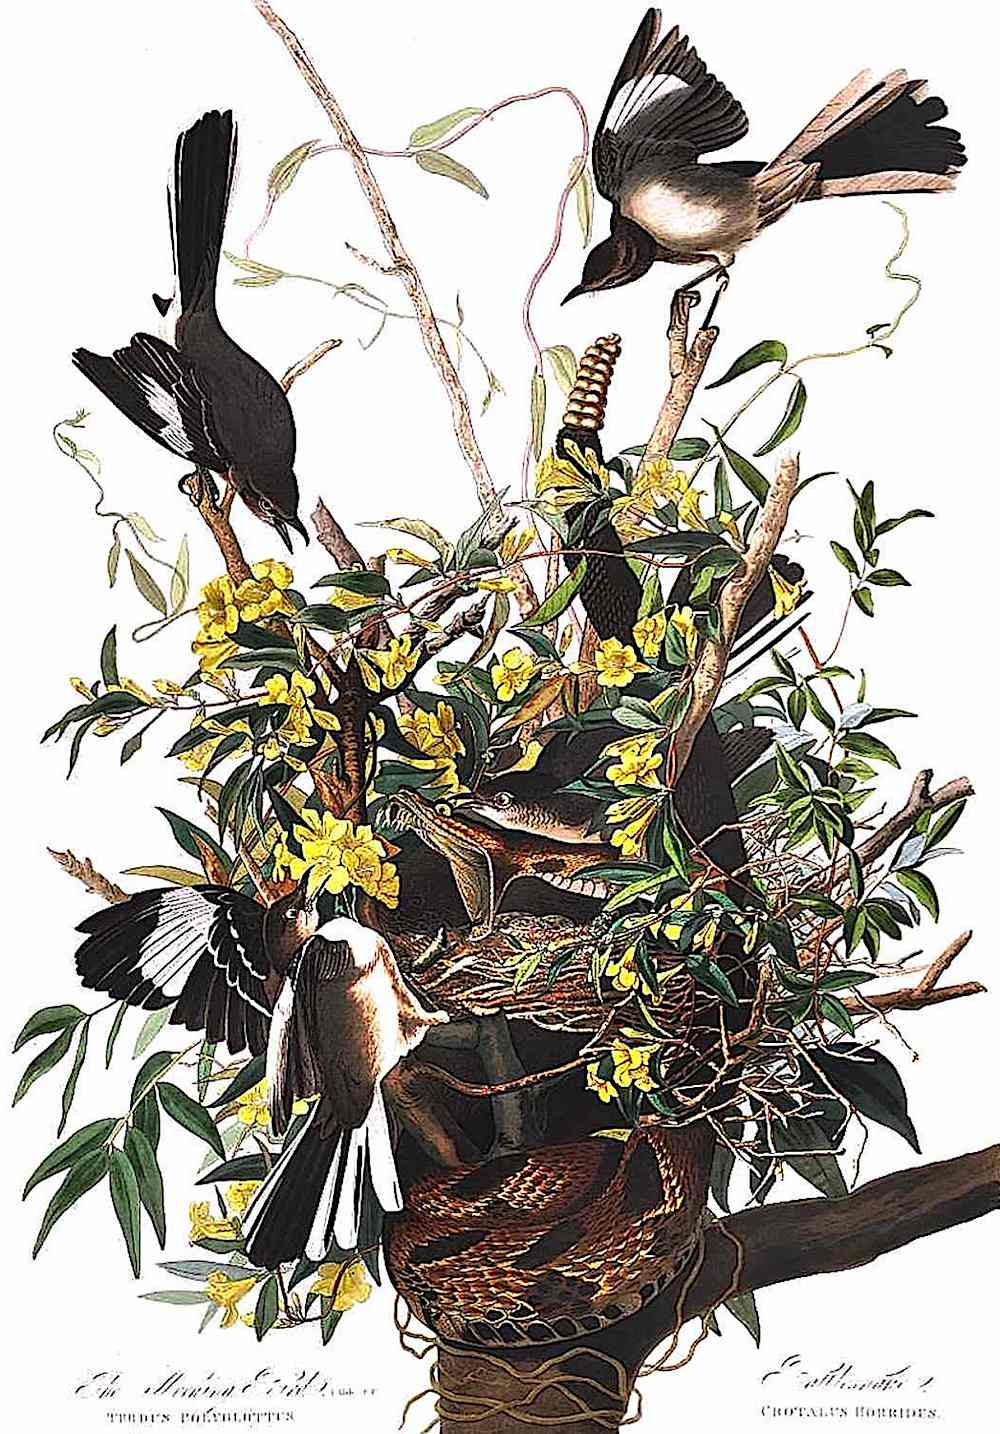 a zoological illustration of a snake attacking a birds nest,  1900?